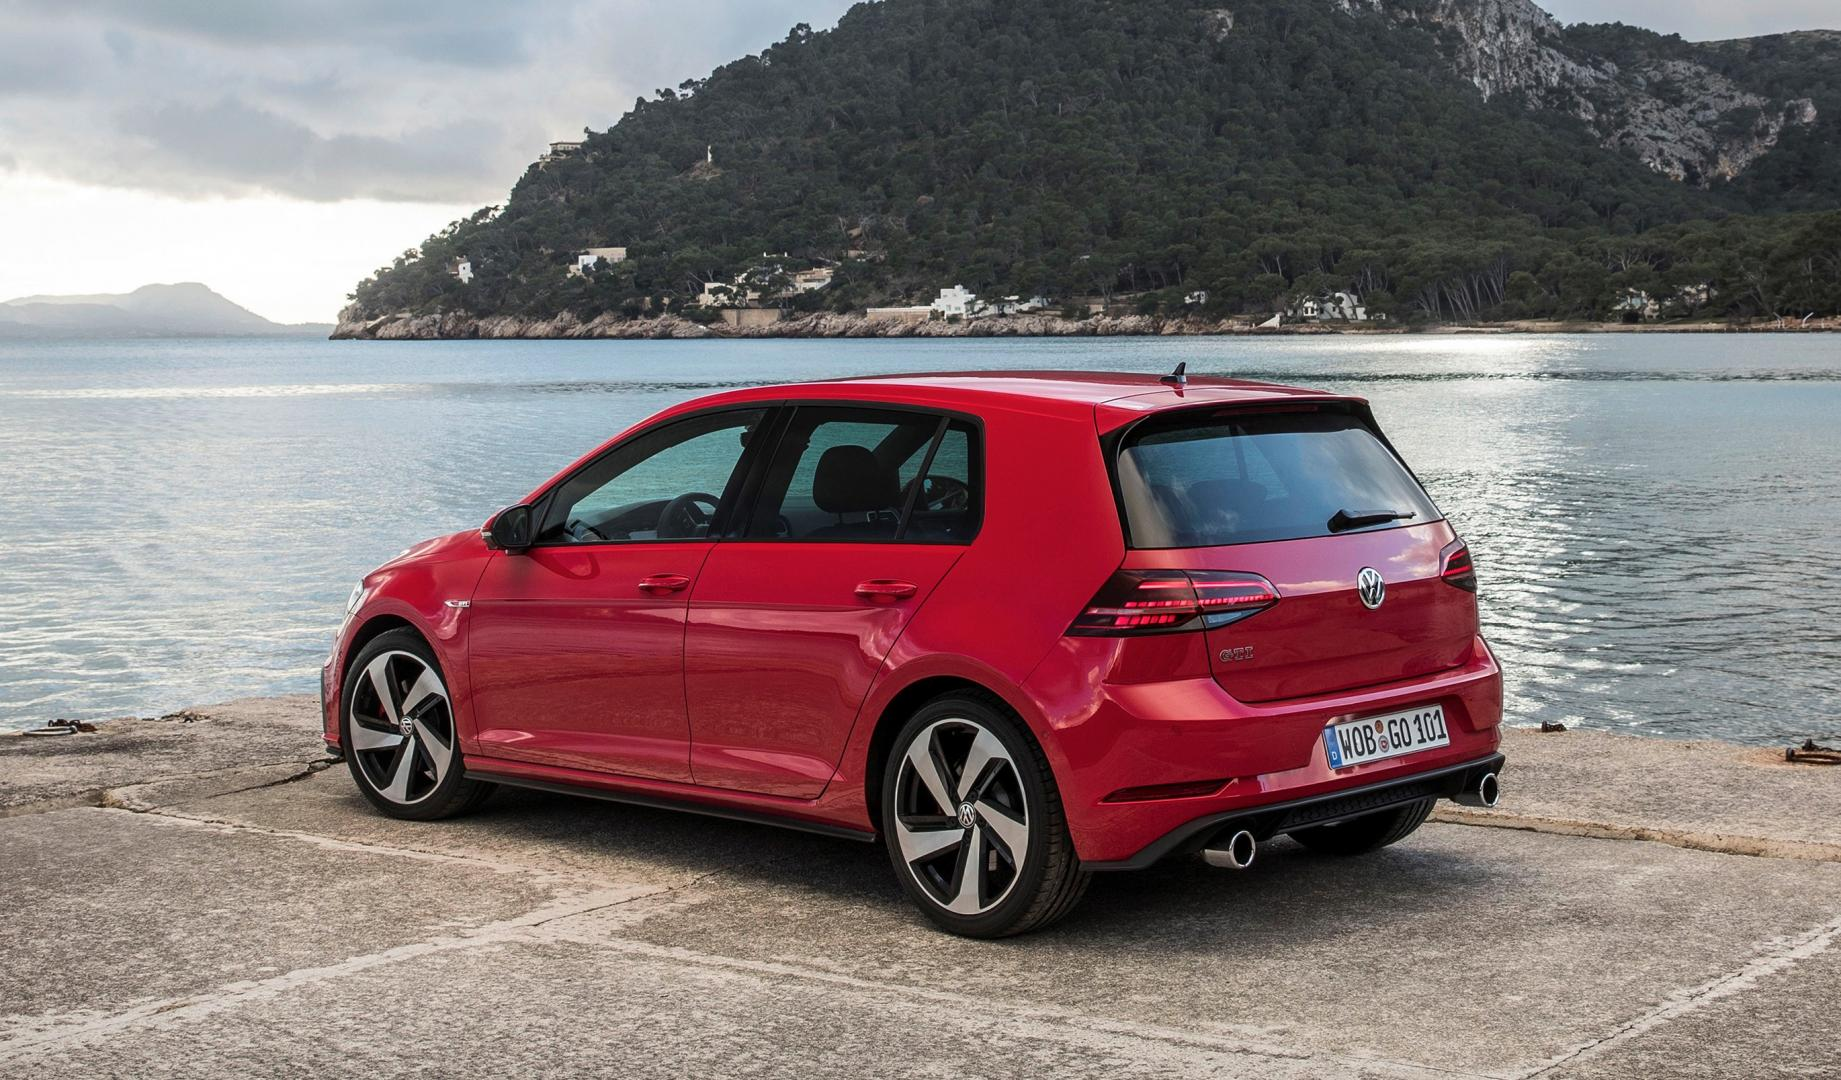 volkswagen golf gti performance 2017 is hier topgear. Black Bedroom Furniture Sets. Home Design Ideas